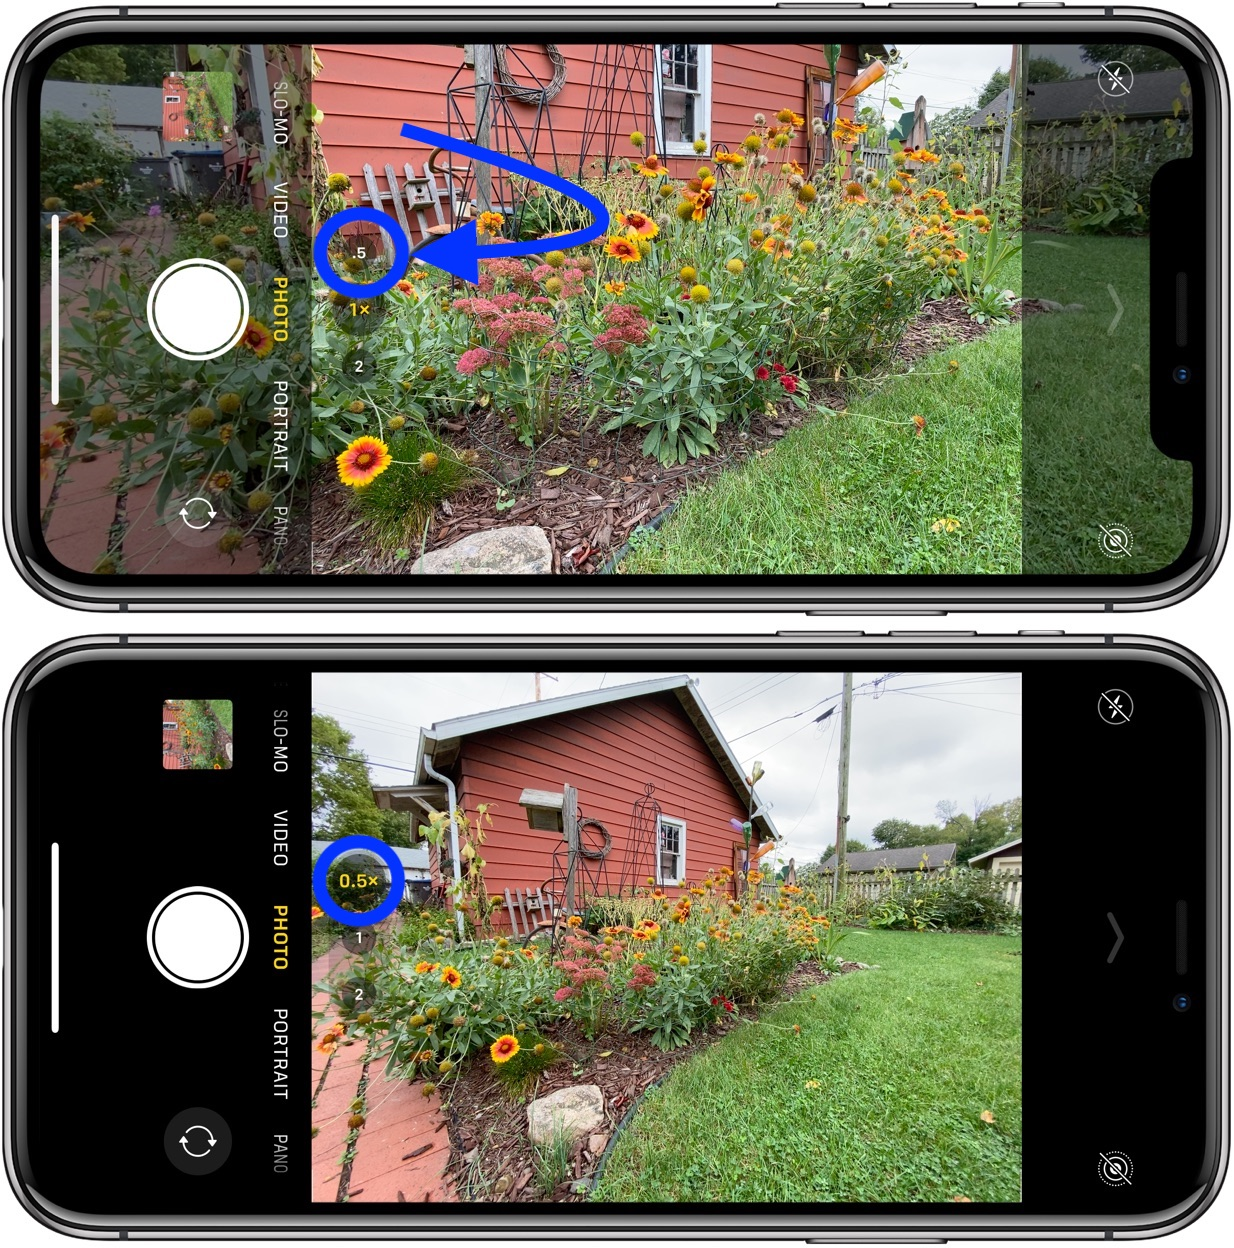 How to use ultra wide camera iPhone 11 and iPhone 11 Pro walkthrough 1